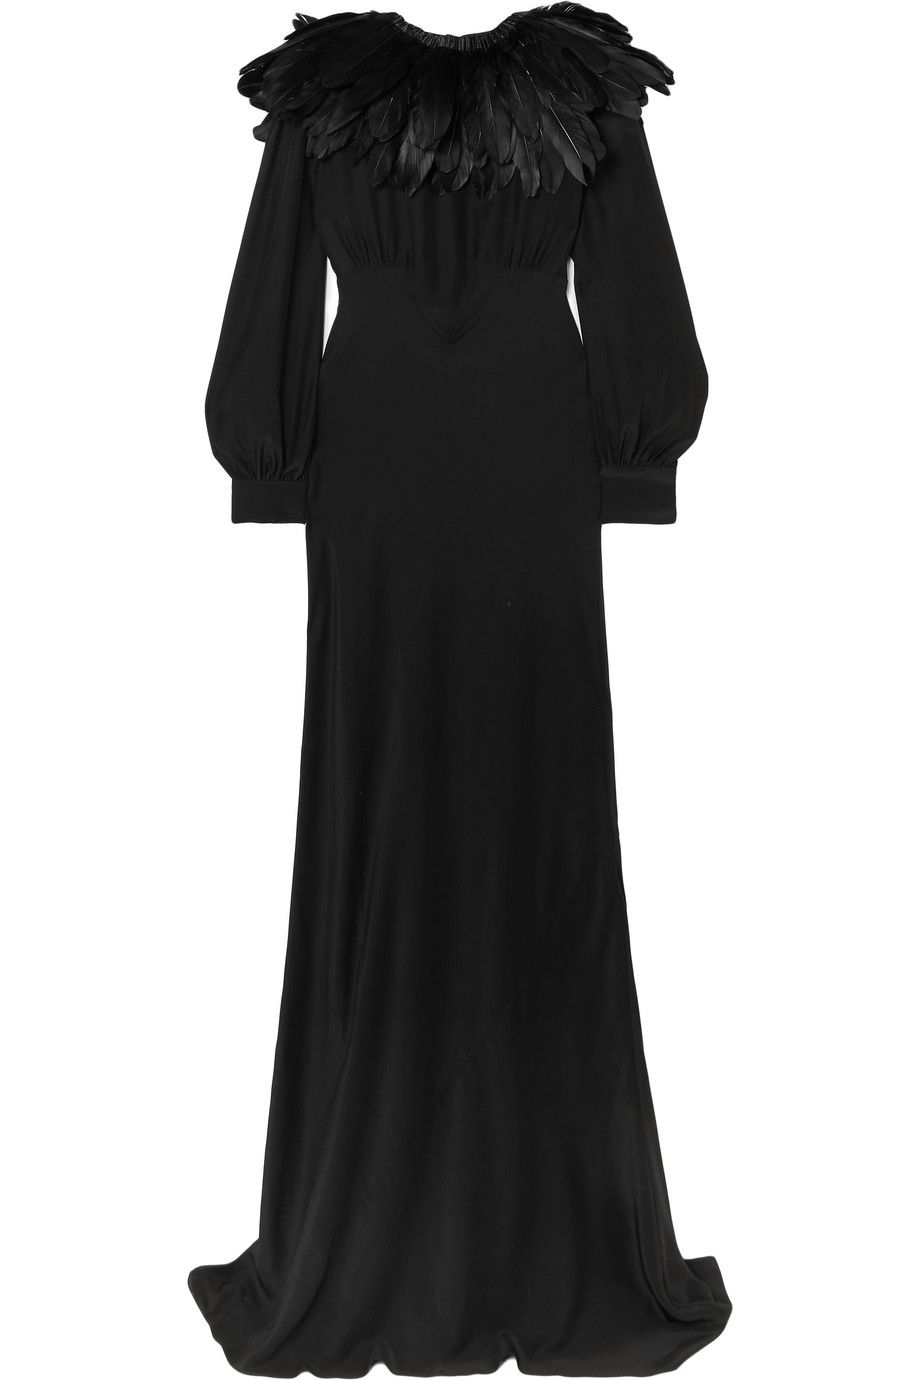 olivia-von-halle-maleficent-angelina-faux-feather-trimmed-silk-crepe-de-chine-gown